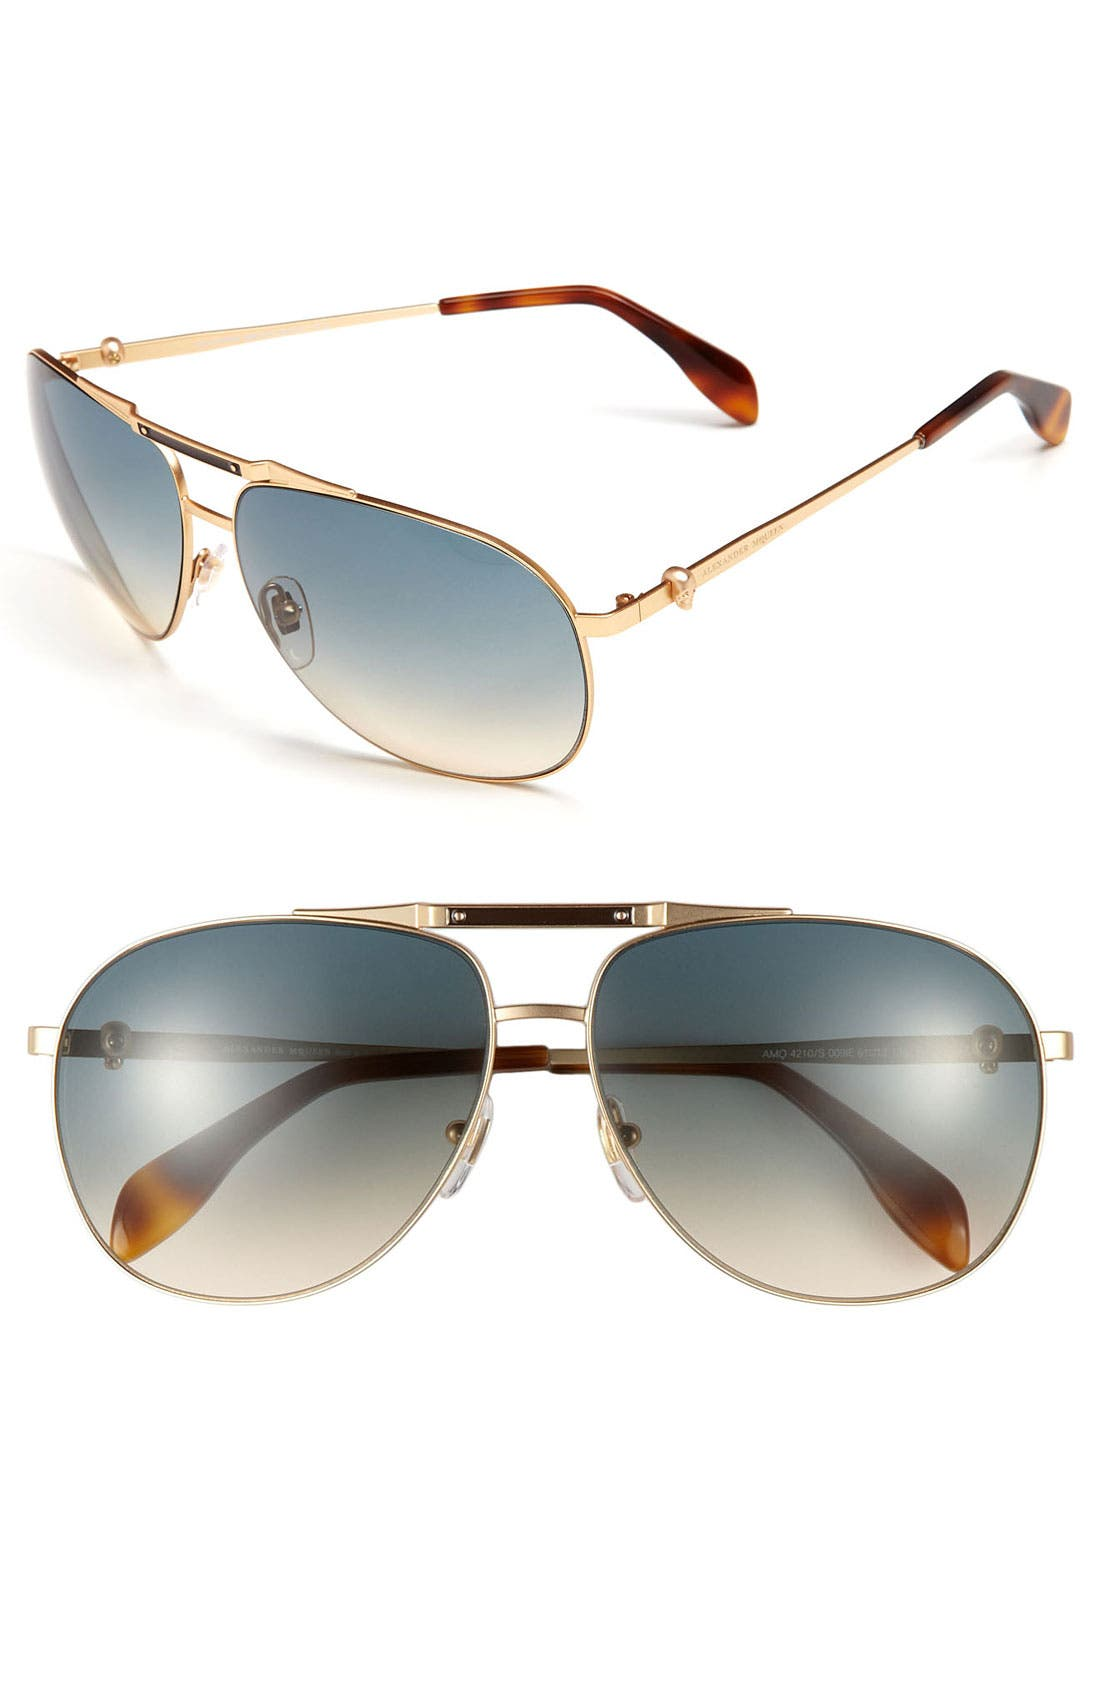 Alternate Image 1 Selected - Alexander McQueen 61mm Metal Aviator Sunglasses